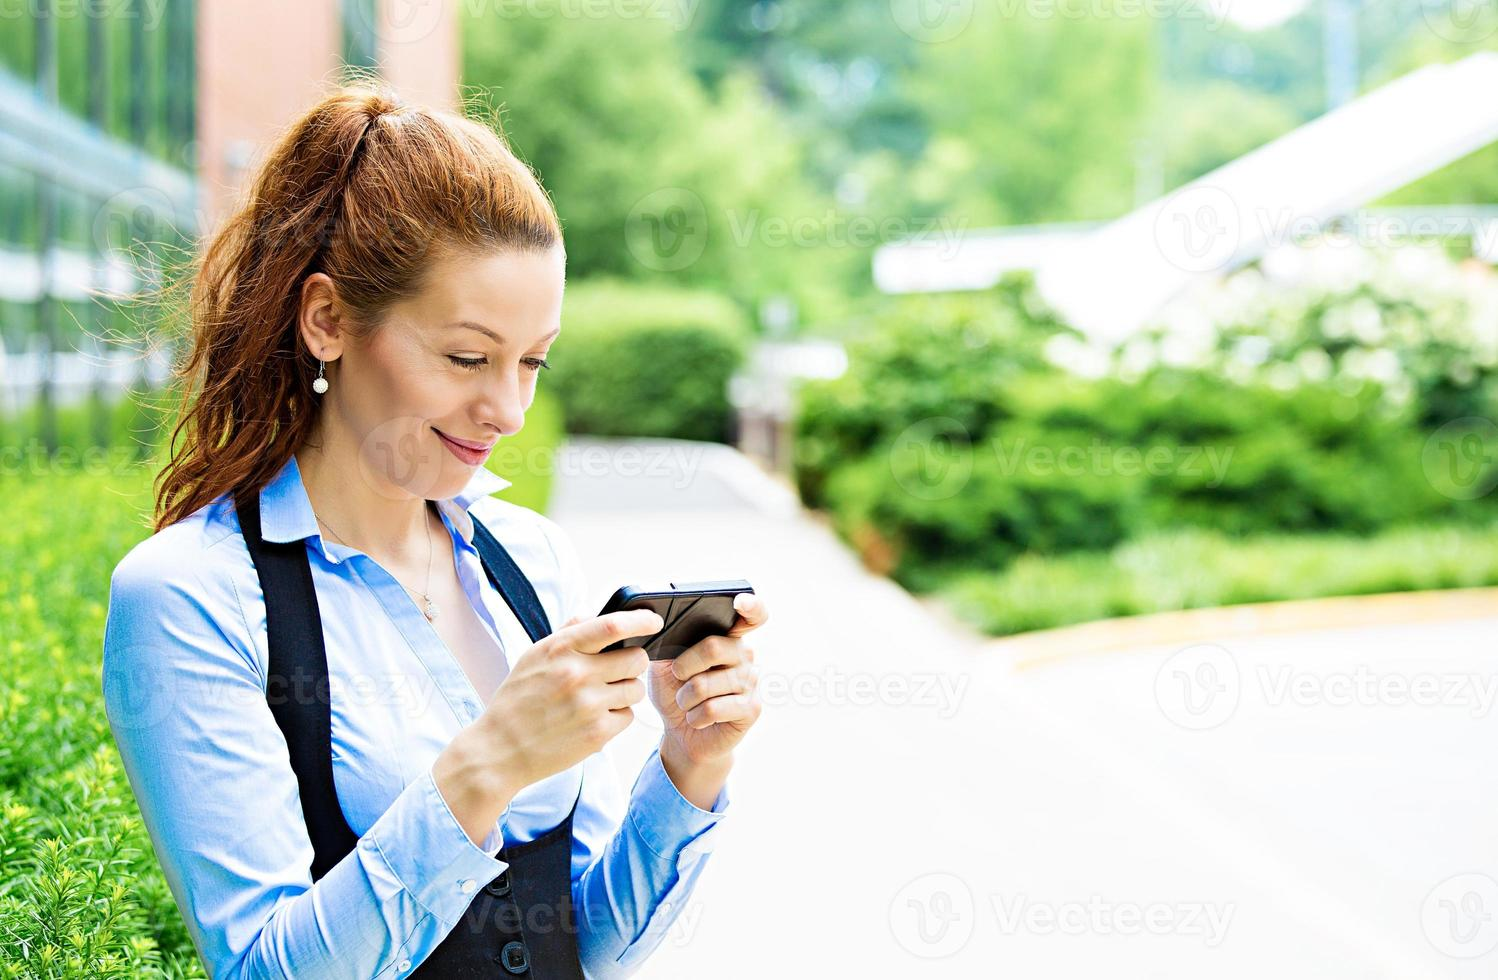 cheerful, girl excited by what she sees on cell phone photo